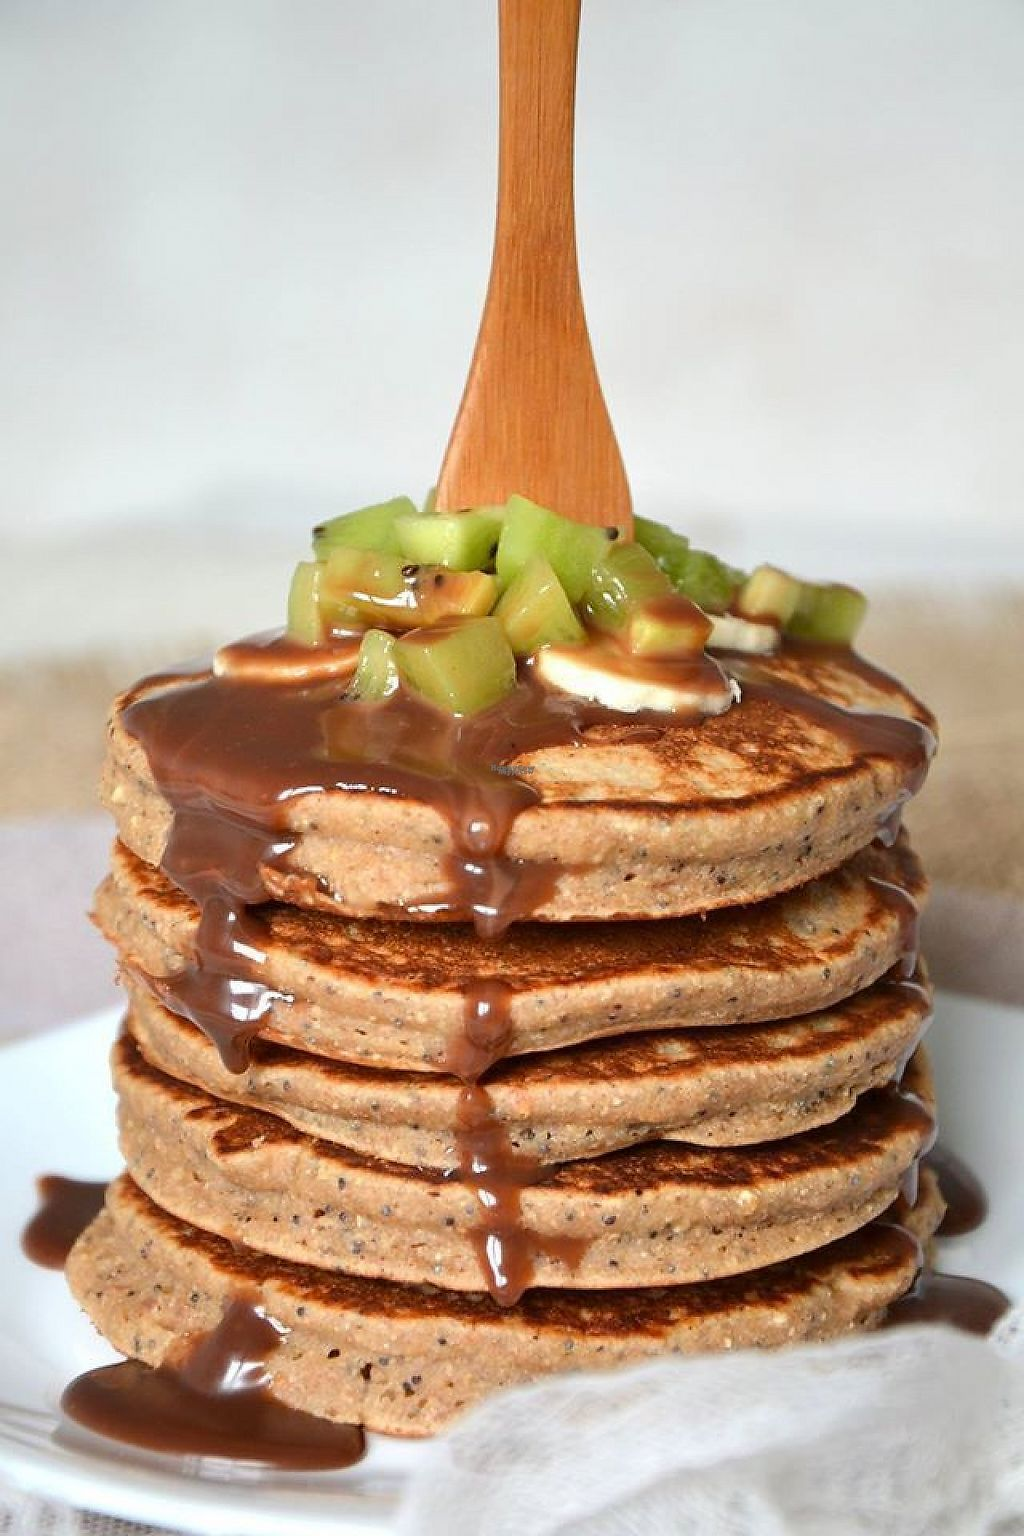 """Photo of La Vie Claire  by <a href=""""/members/profile/community"""">community</a> <br/>vegan pancakes  <br/> February 4, 2017  - <a href='/contact/abuse/image/72044/221892'>Report</a>"""